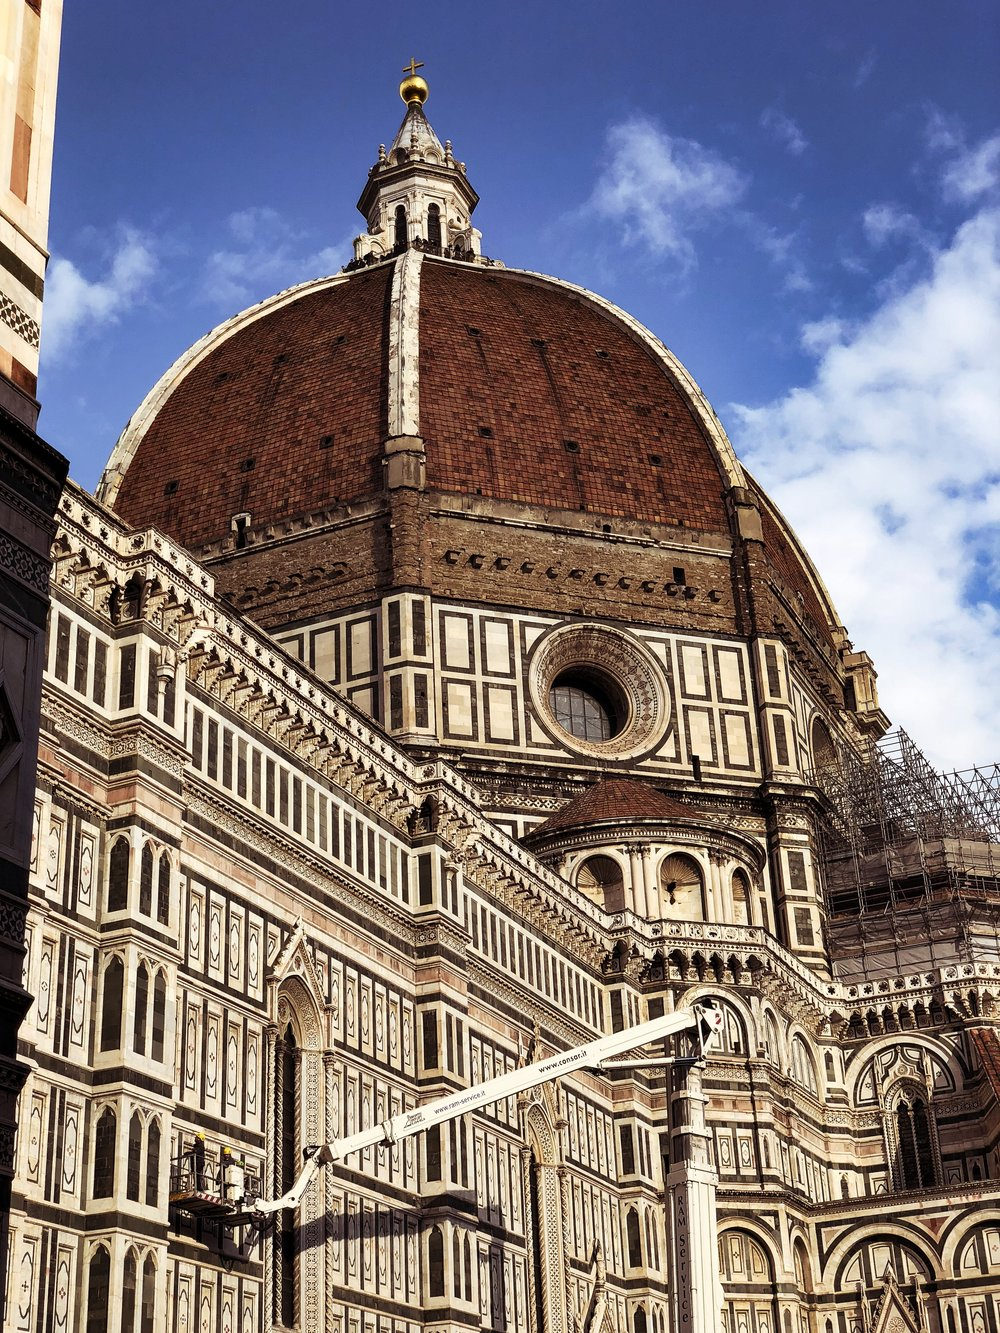 More posts in progress, just like maintaining the Duomo.